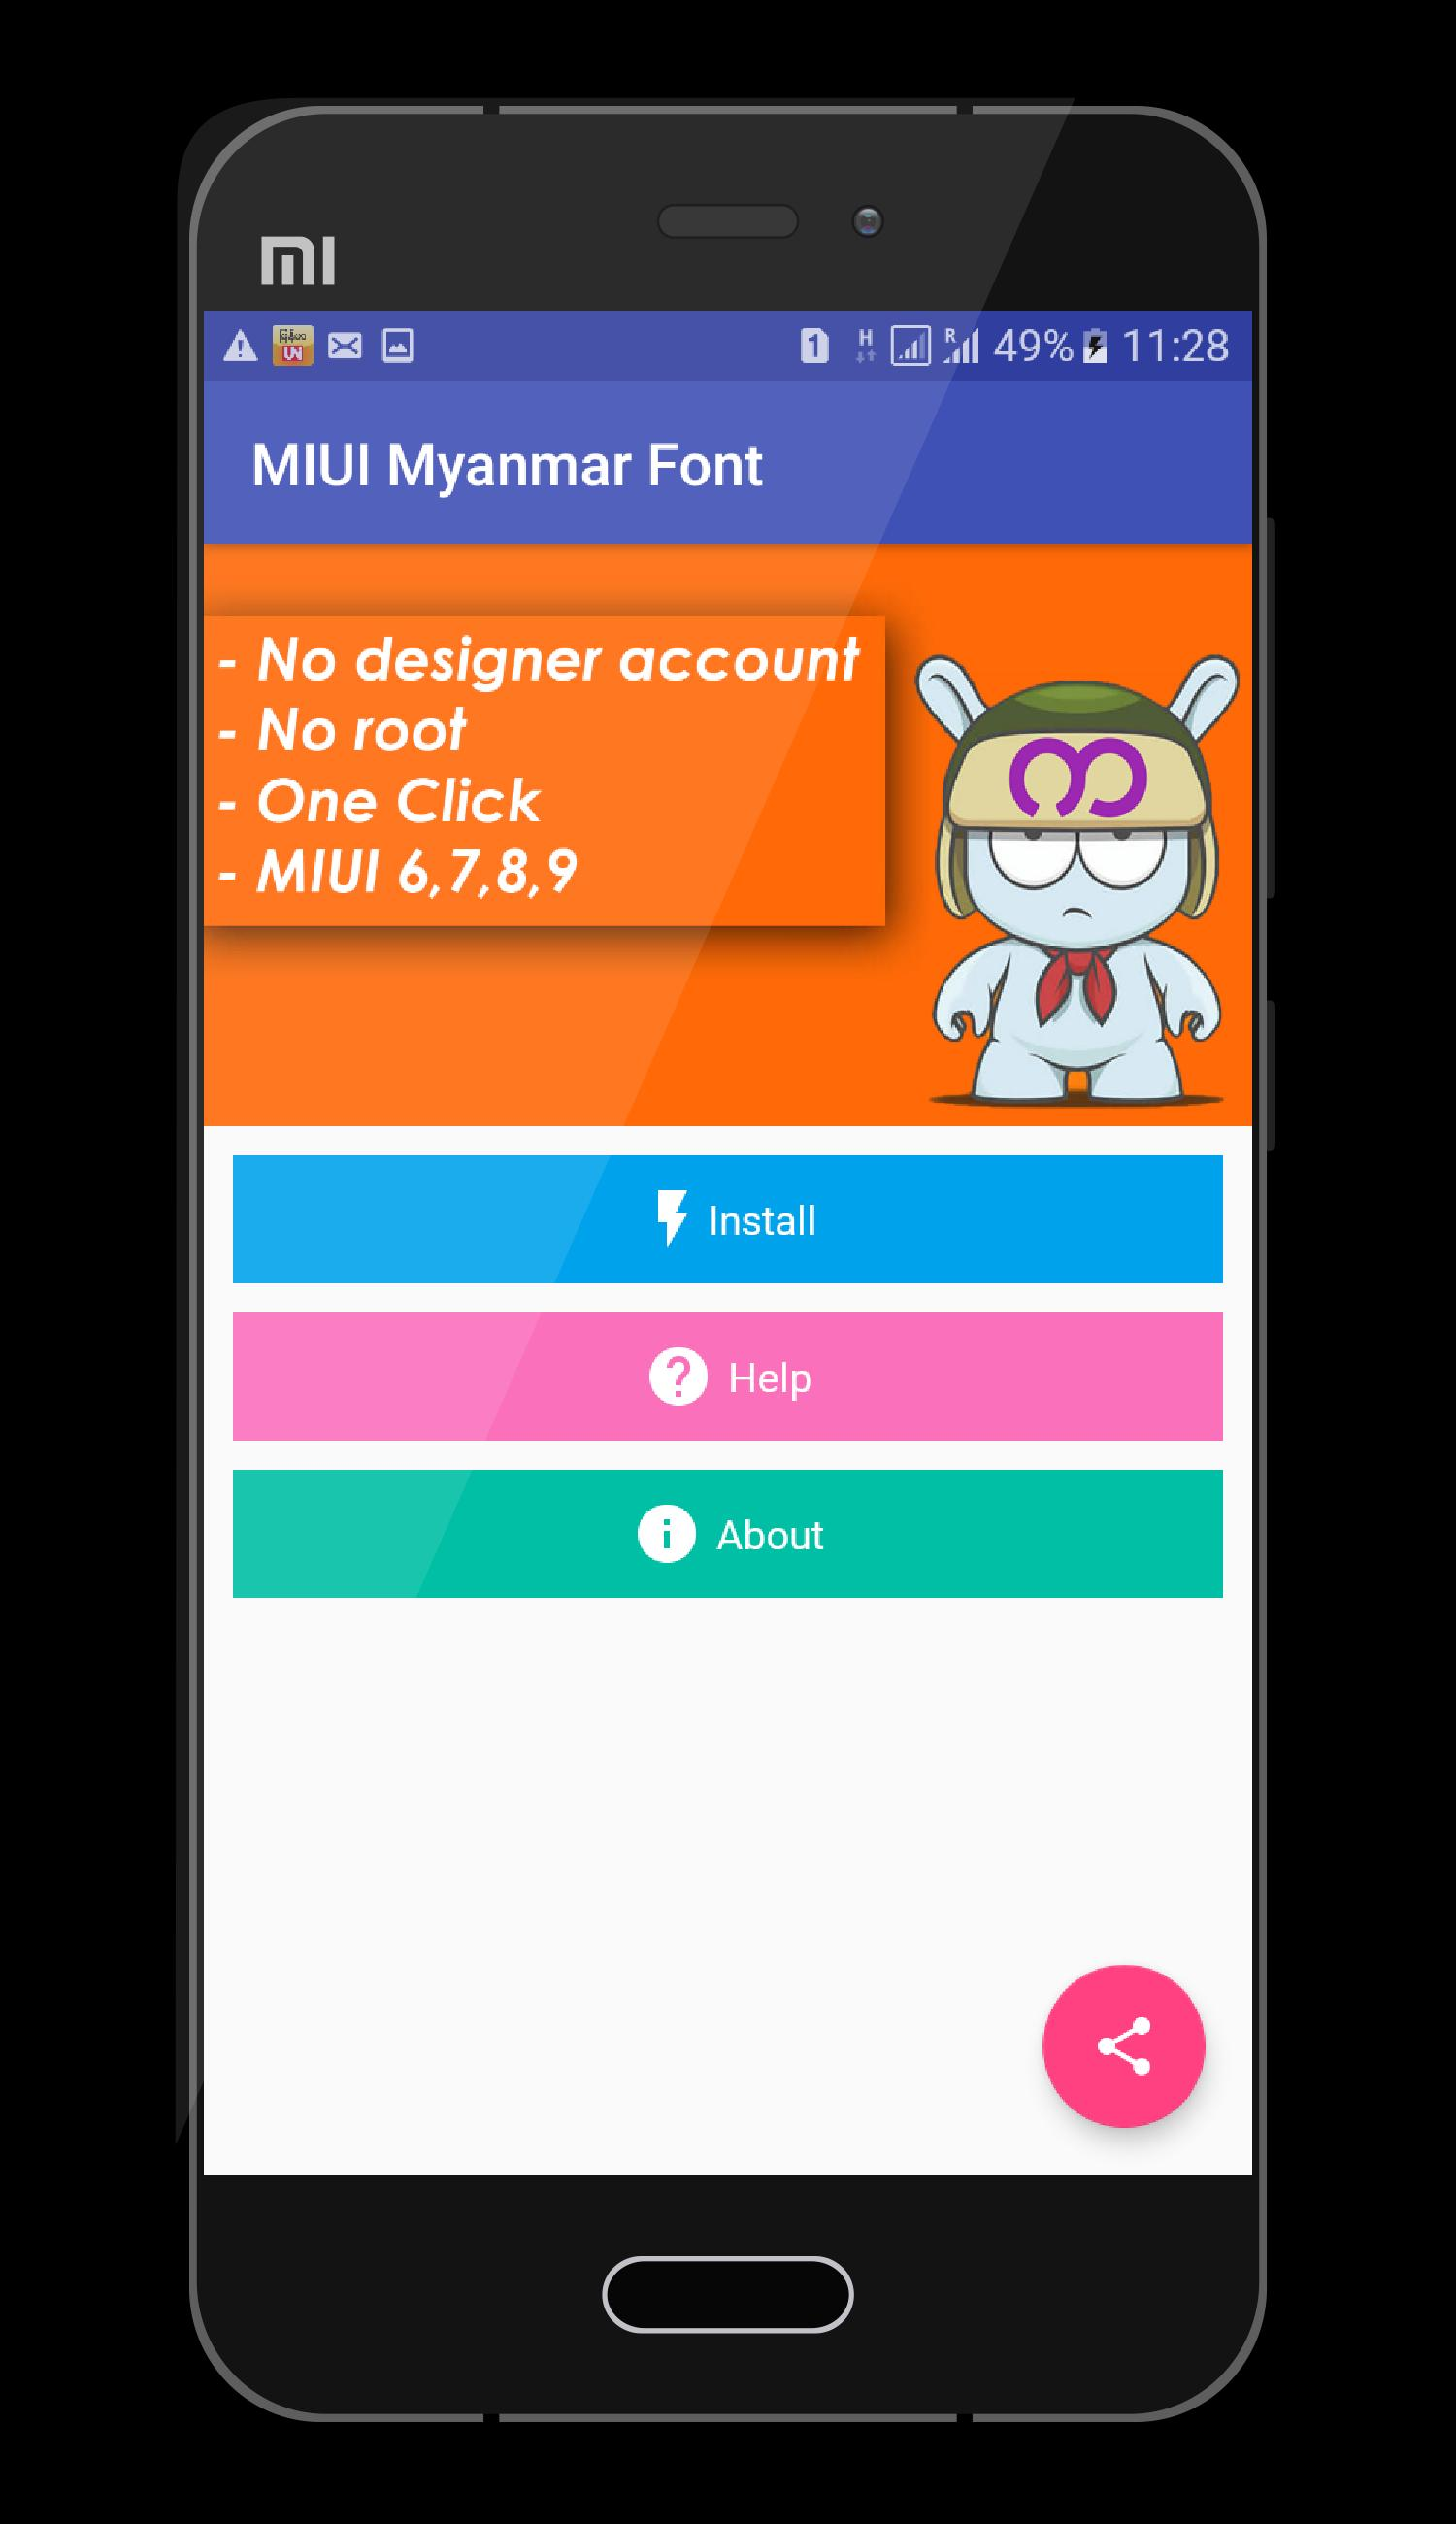 Mi Myanmar Font (MIUI 6,7,8,9) for Android - APK Download